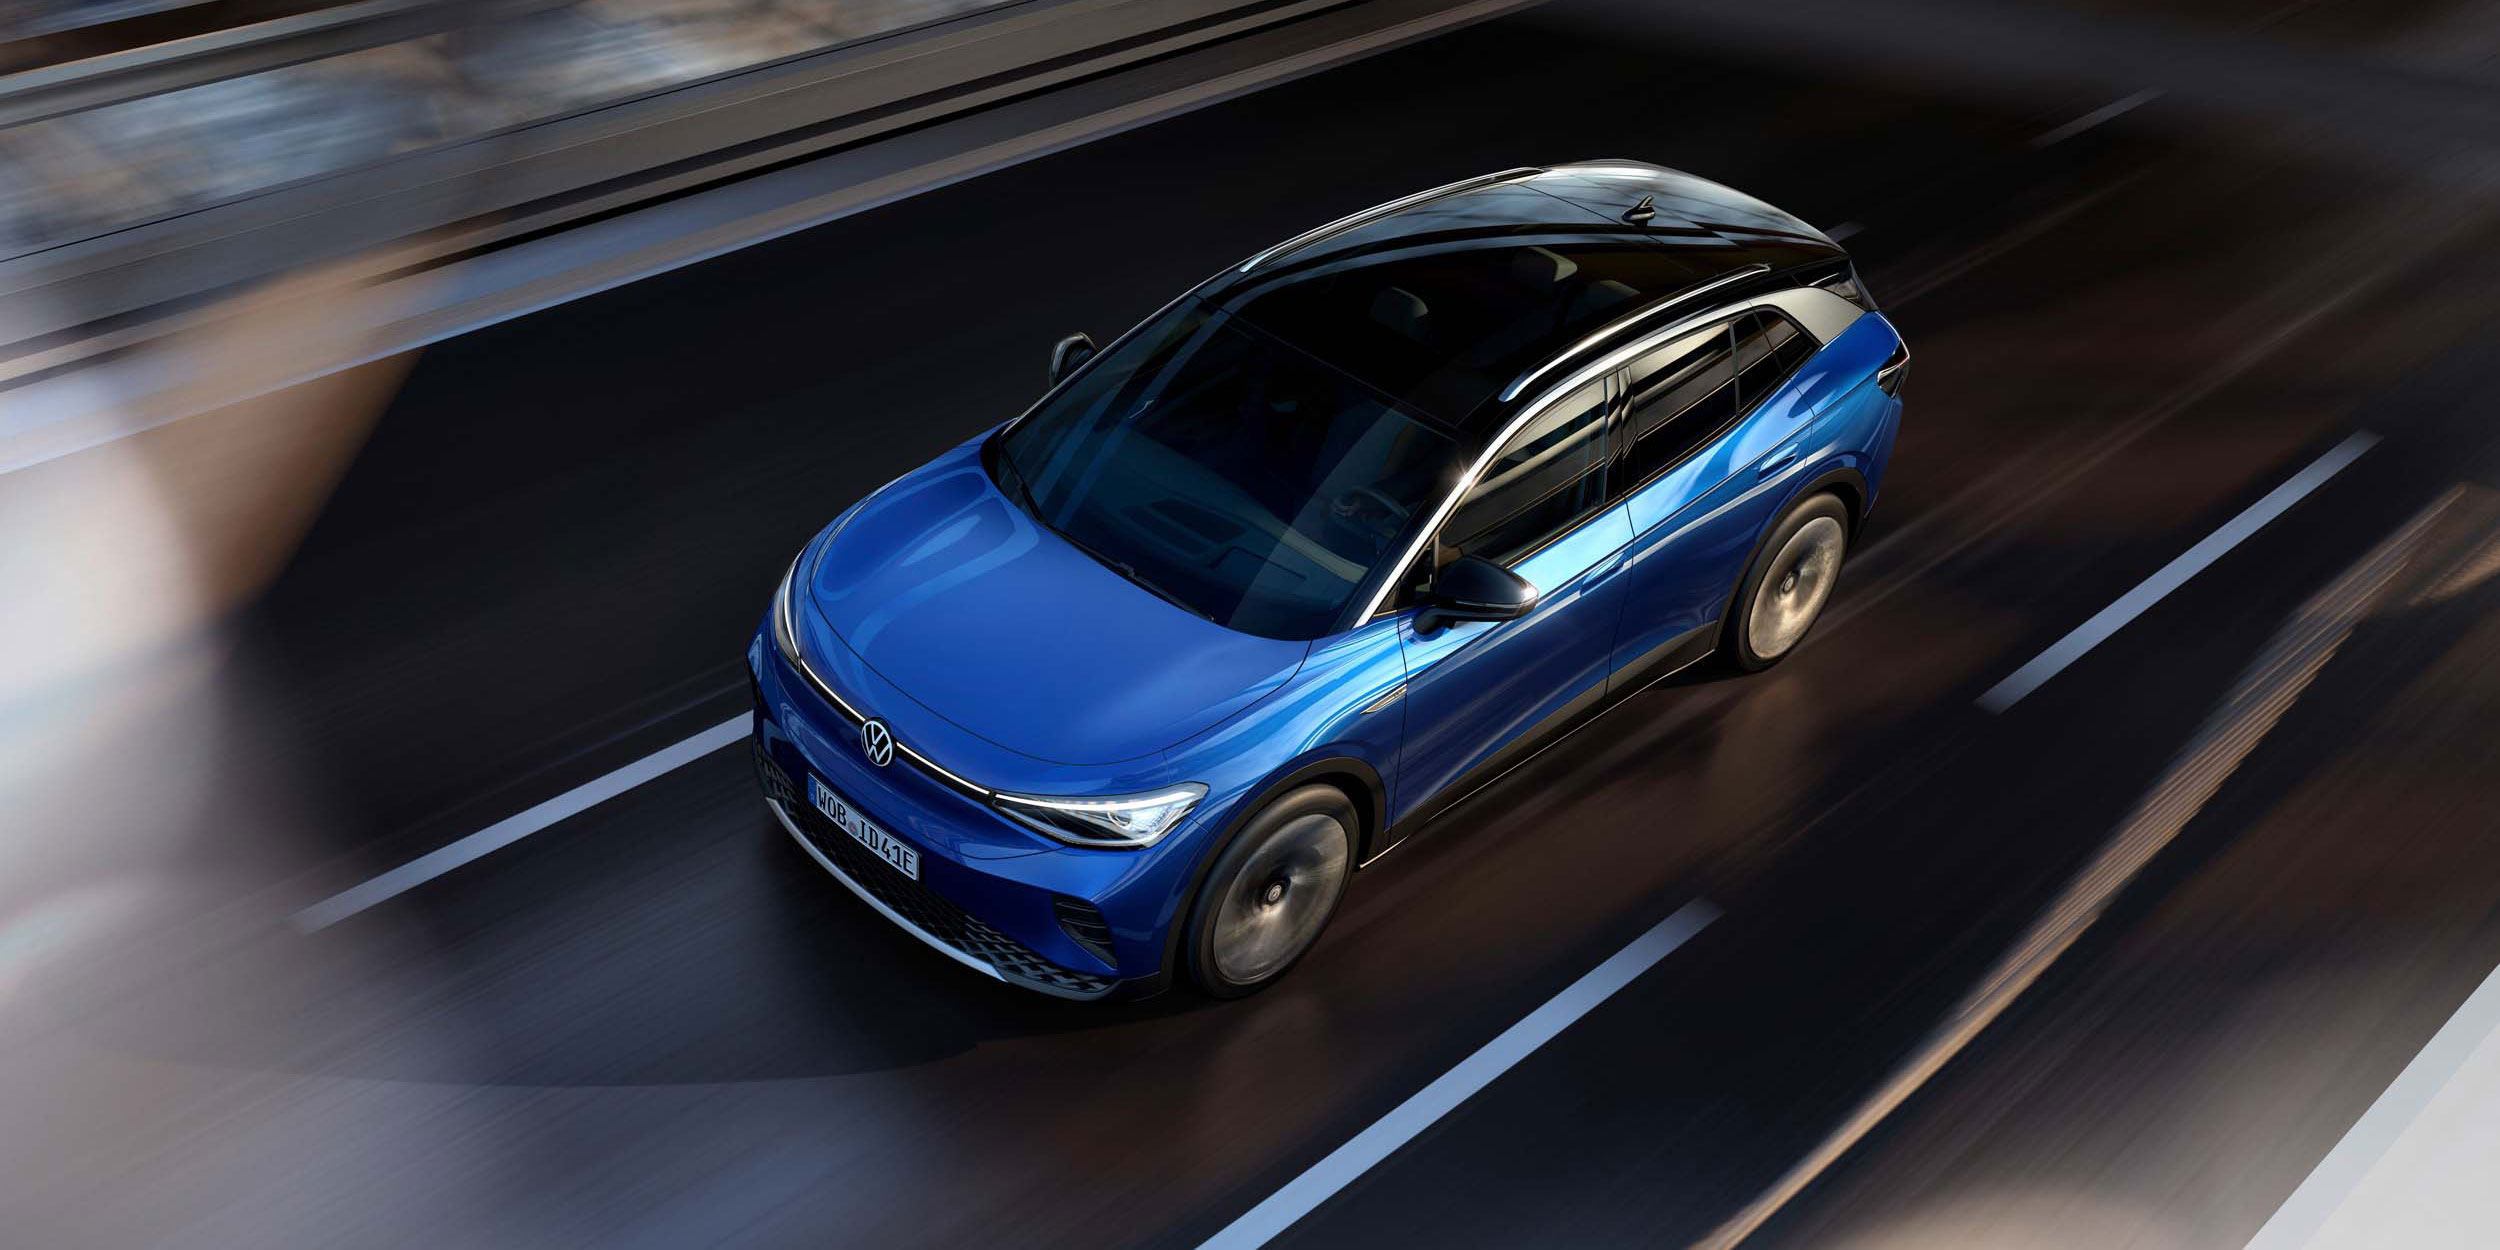 VOLKSWAGEN UNVEILS THE ALL-NEW 2021 ID.4 ELECTRIC SUV